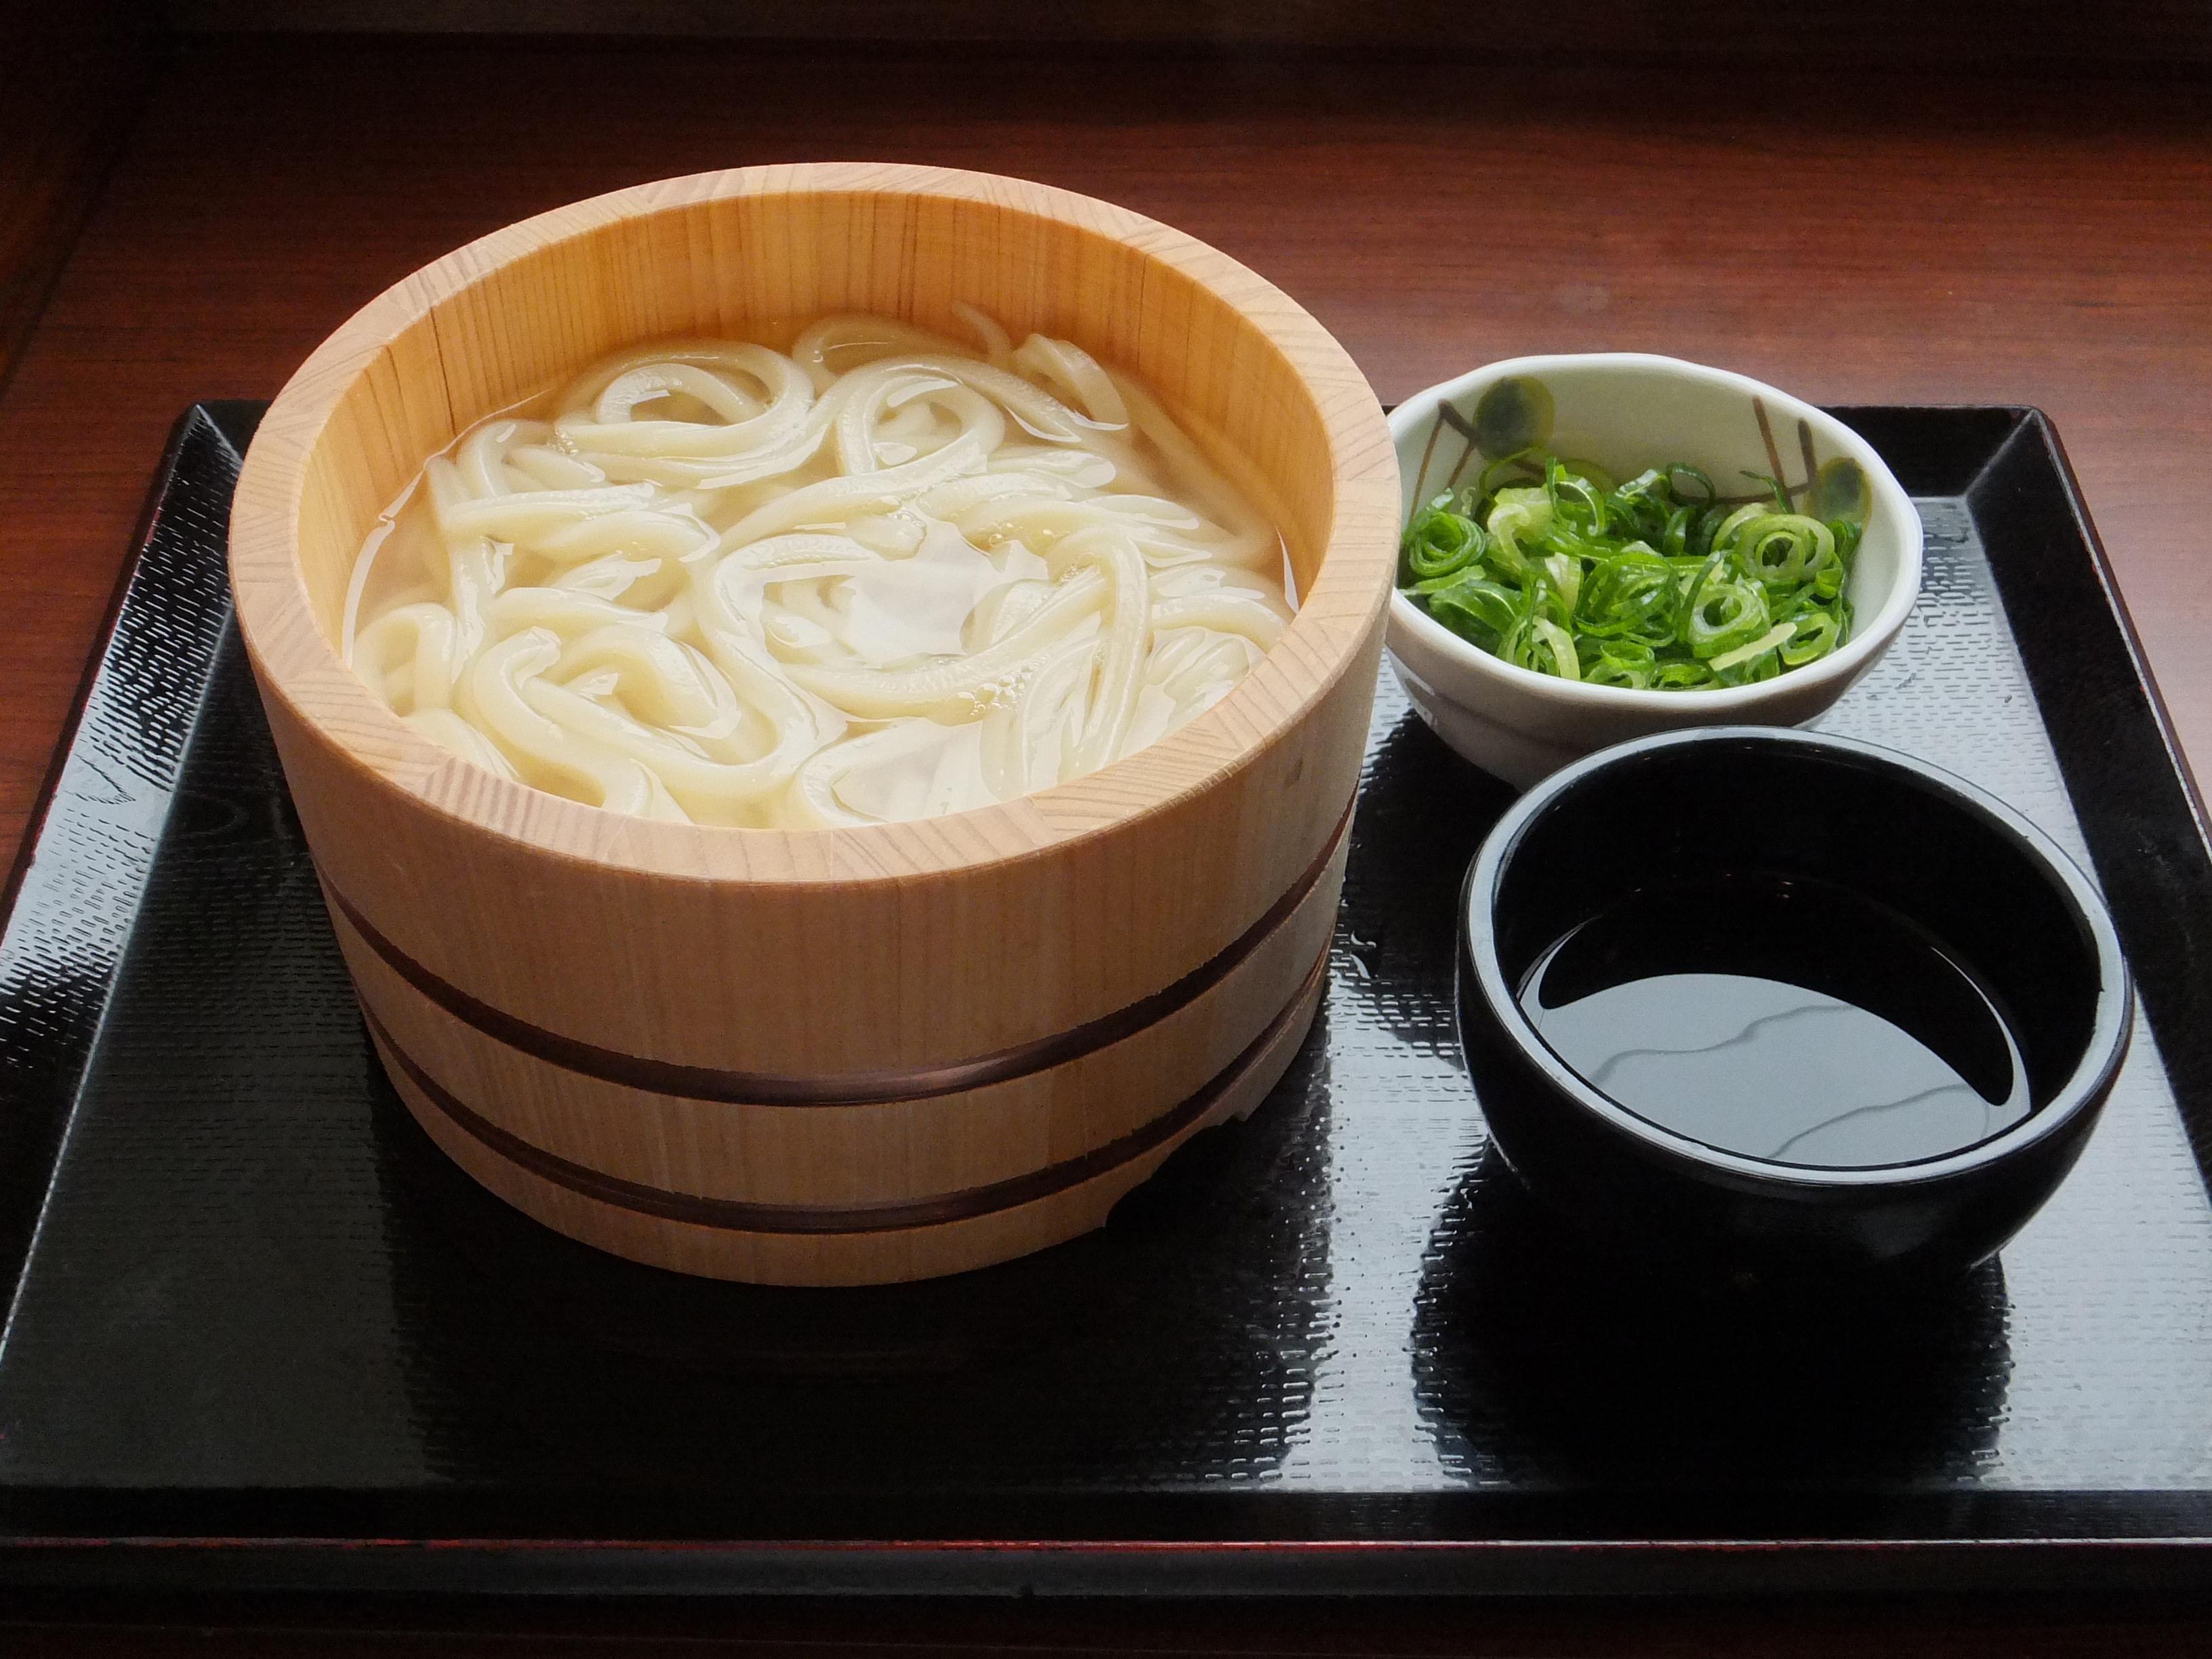 https://upload.wikimedia.org/wikipedia/commons/b/b2/Kamaage_udon,_at_Marugame_Seimen_%282013.06.01%29.jpg